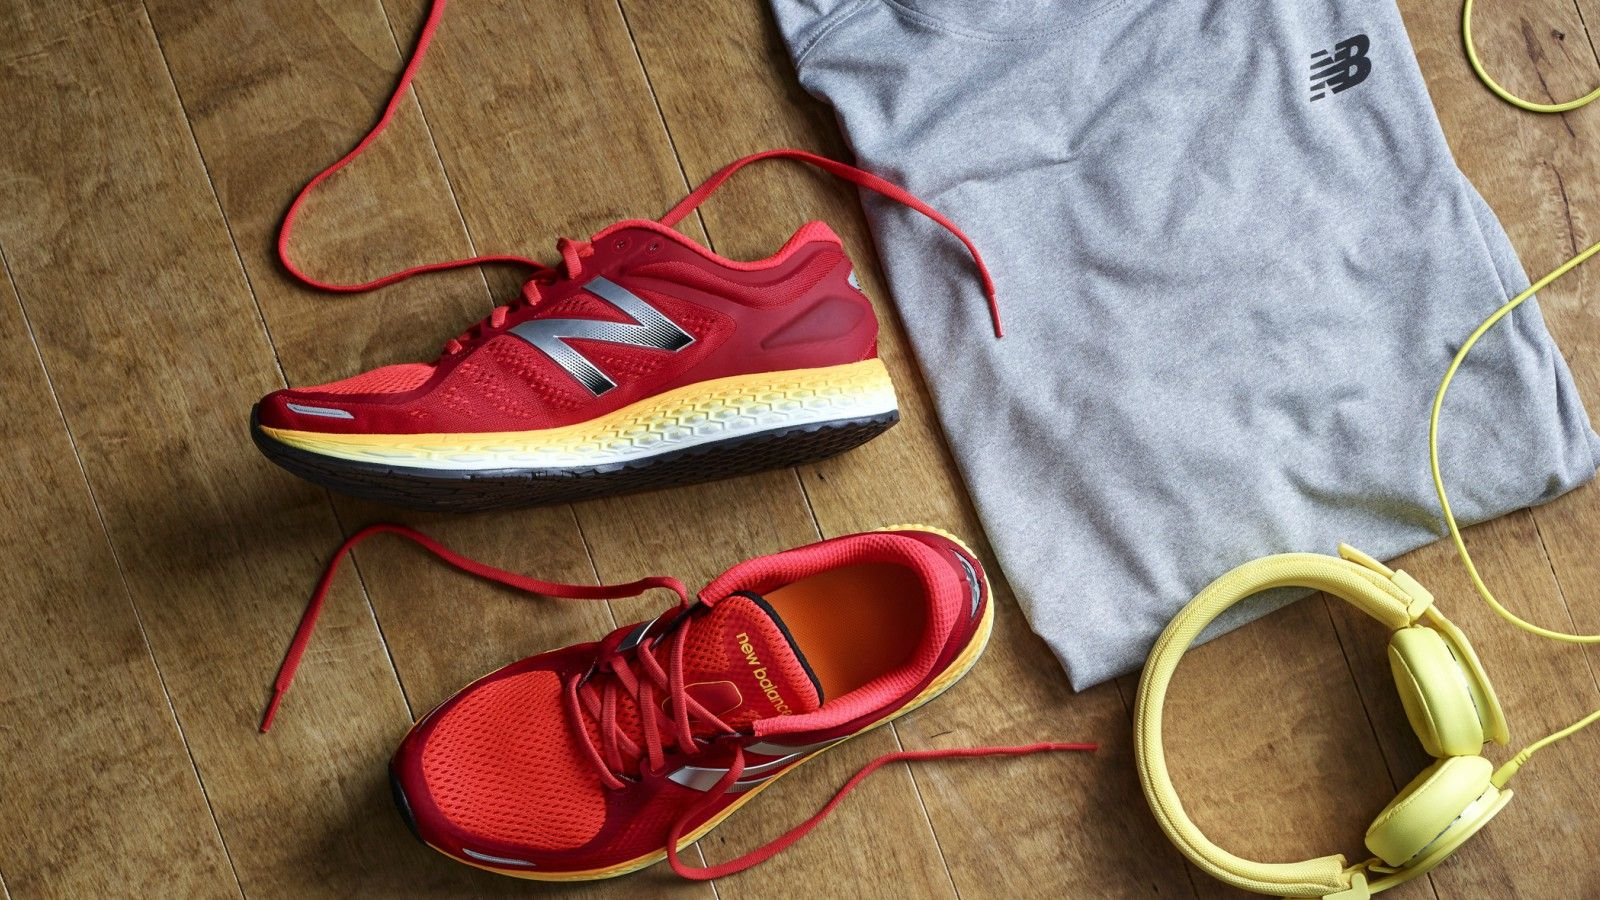 Gear Lending with New Balance